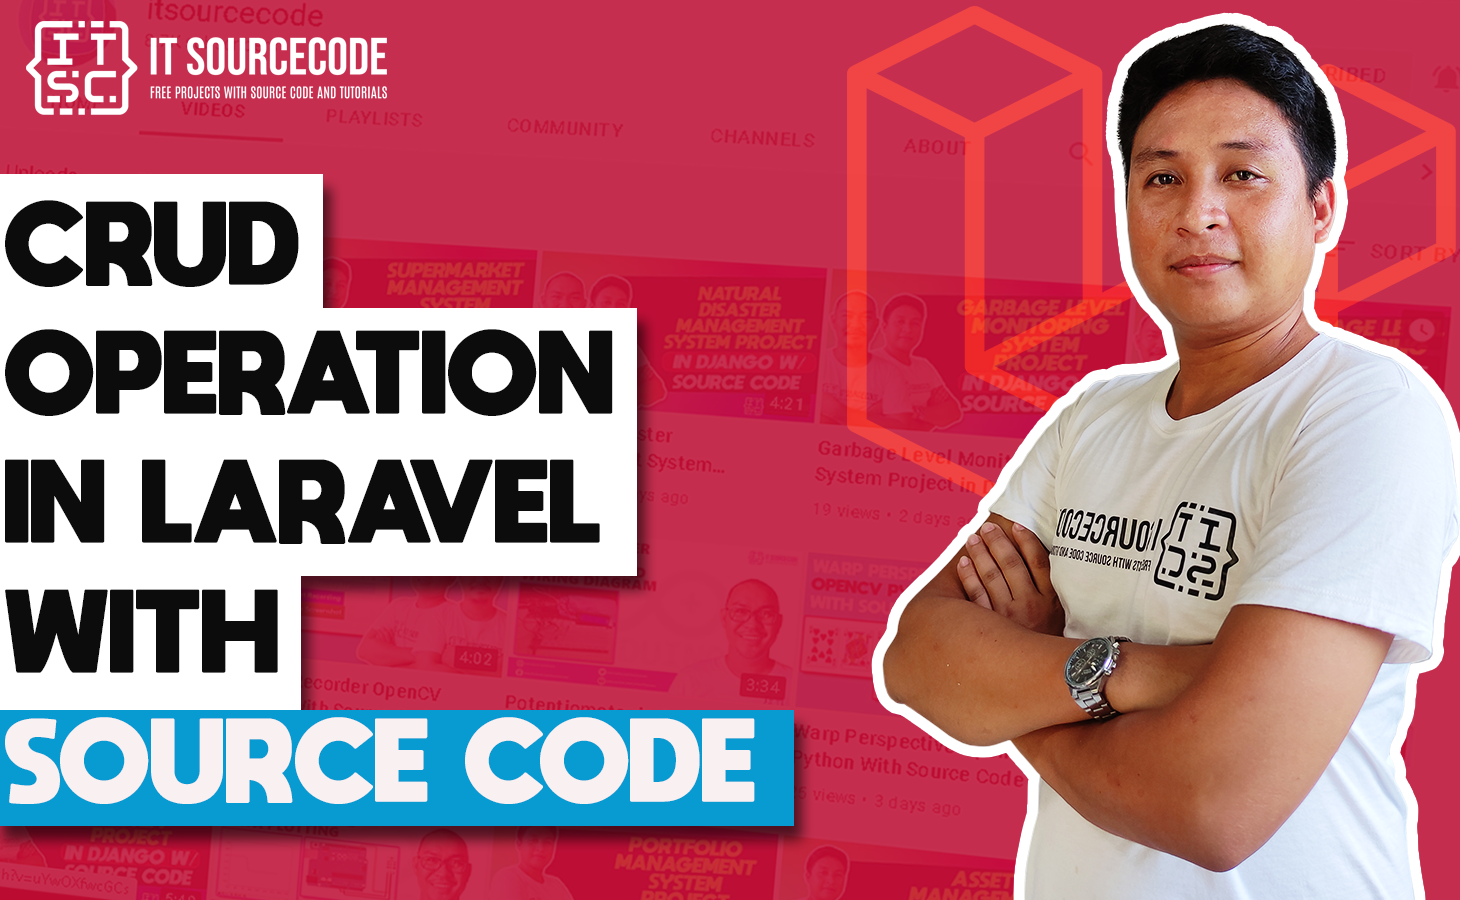 Crud Operation Project in Laravel With Source Code